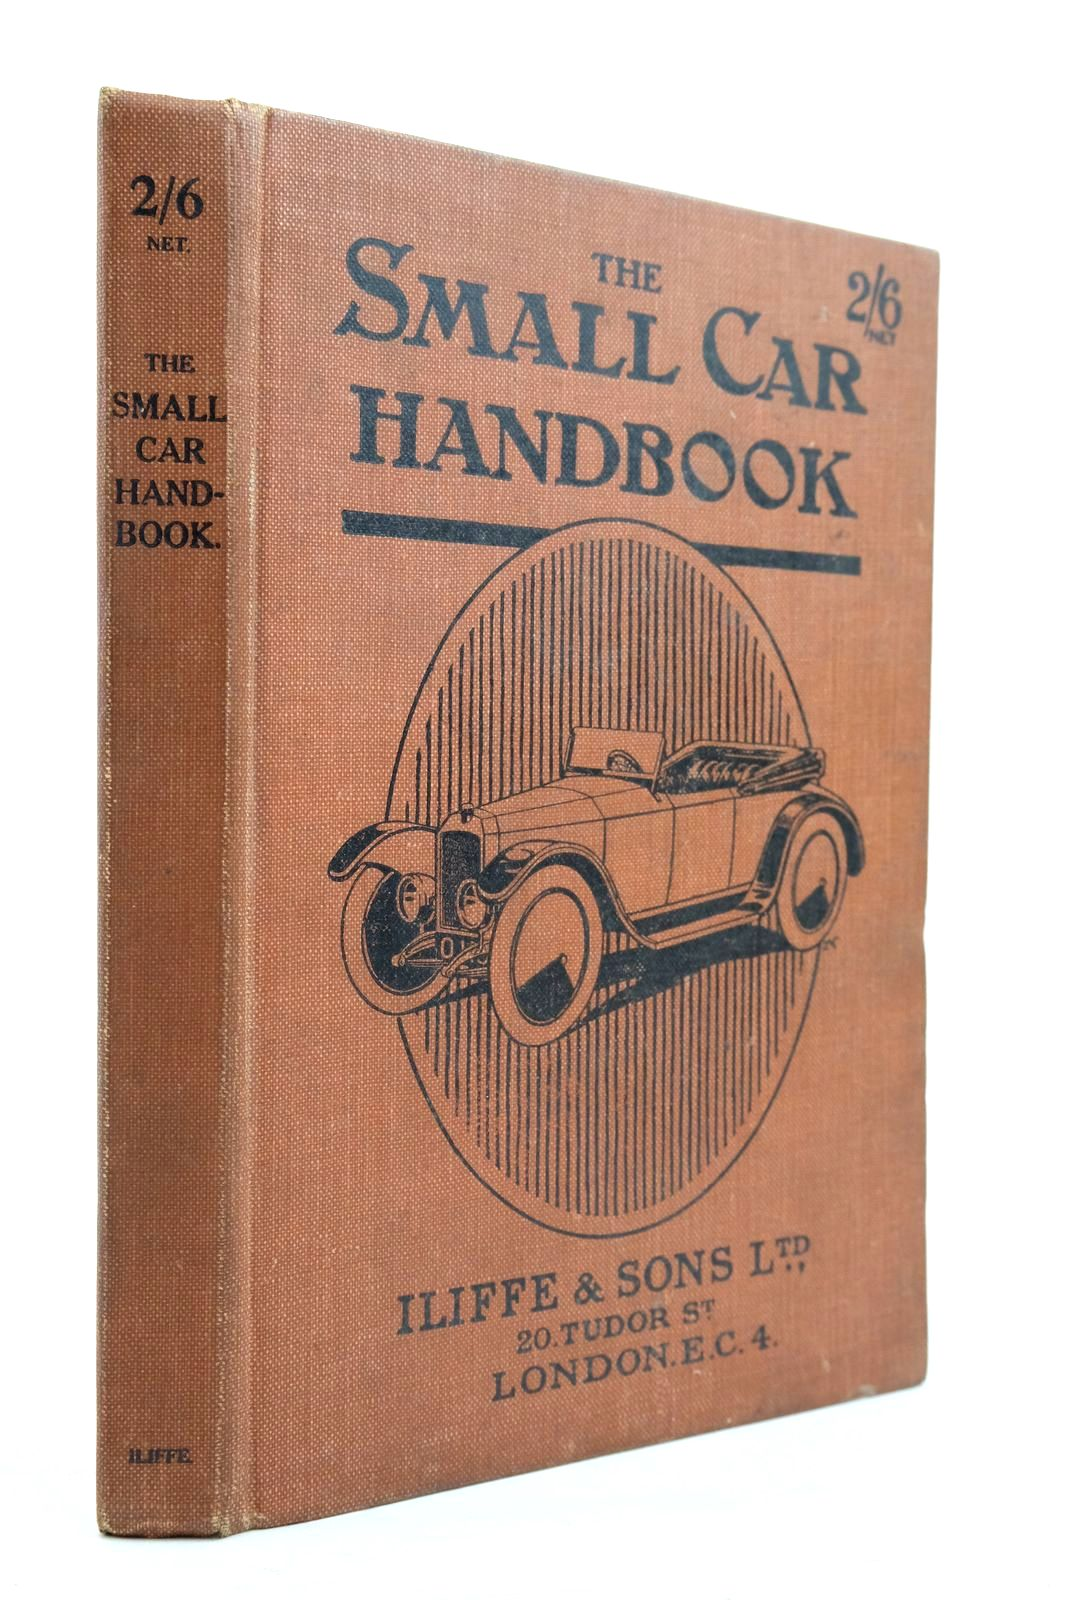 Photo of THE SMALL CAR HANDBOOK written by Candidus, published by Iliffe & Sons Limited (STOCK CODE: 2134604)  for sale by Stella & Rose's Books